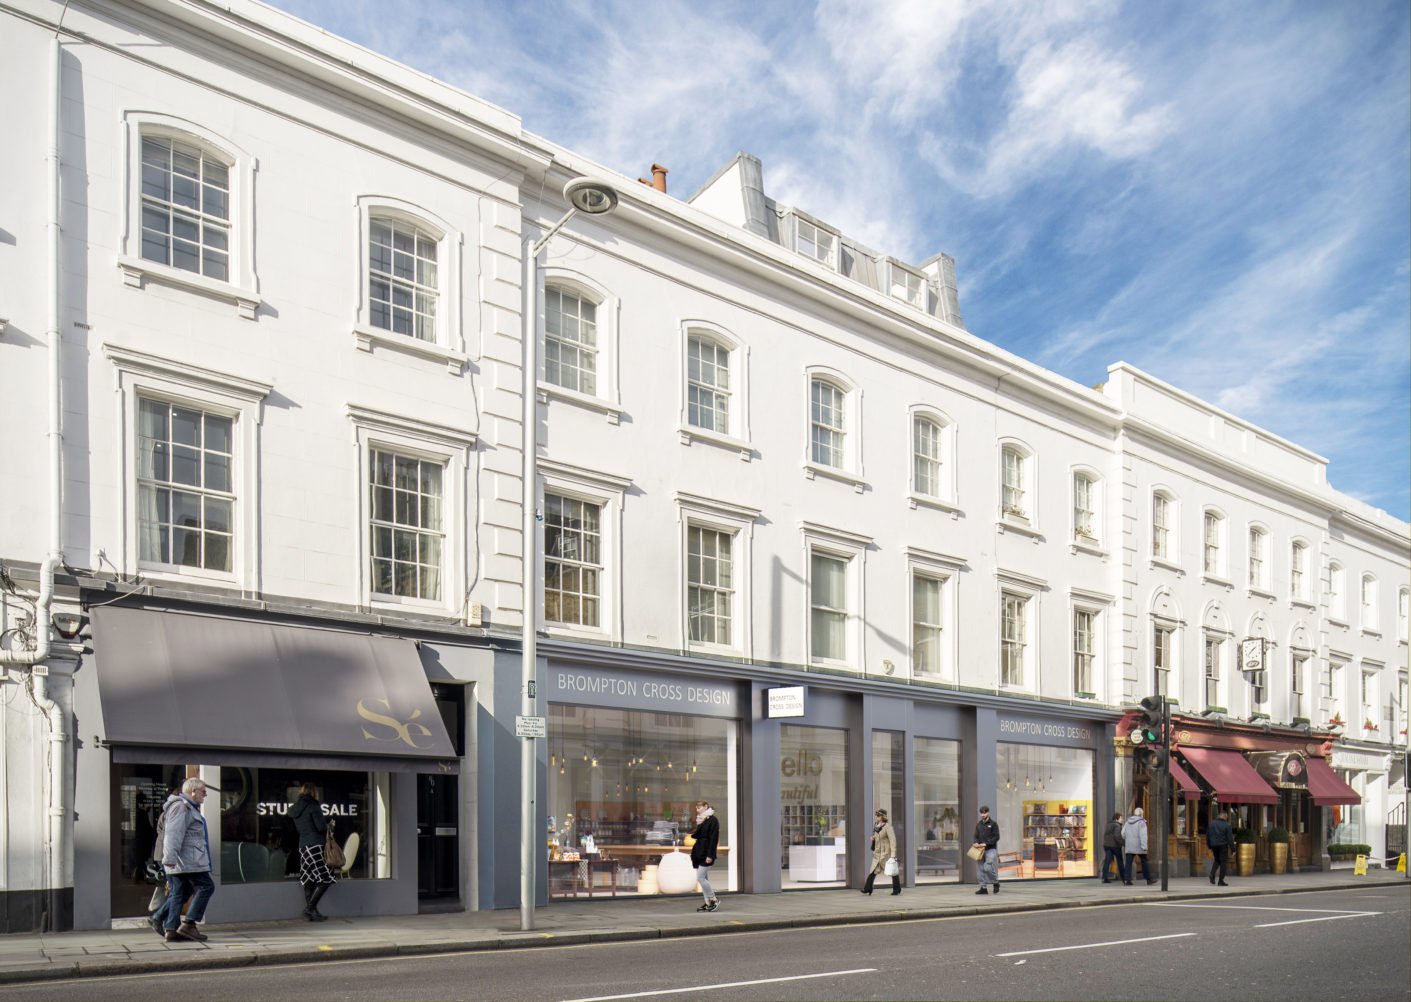 Image of retail stores on Fulham Road with CGI imagery showing 3 stores as one new shopfront in grey